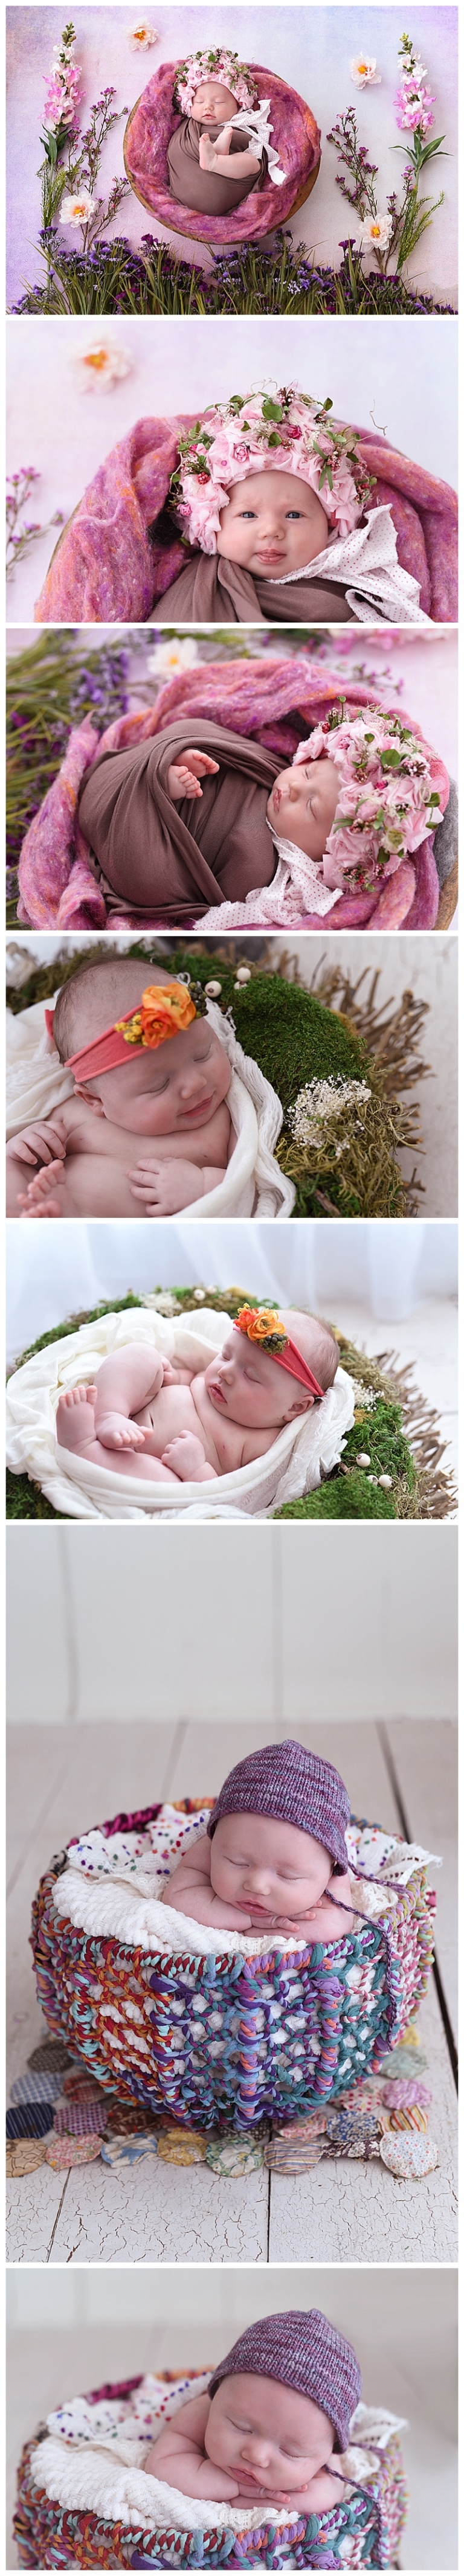 anchorage newborn photographer